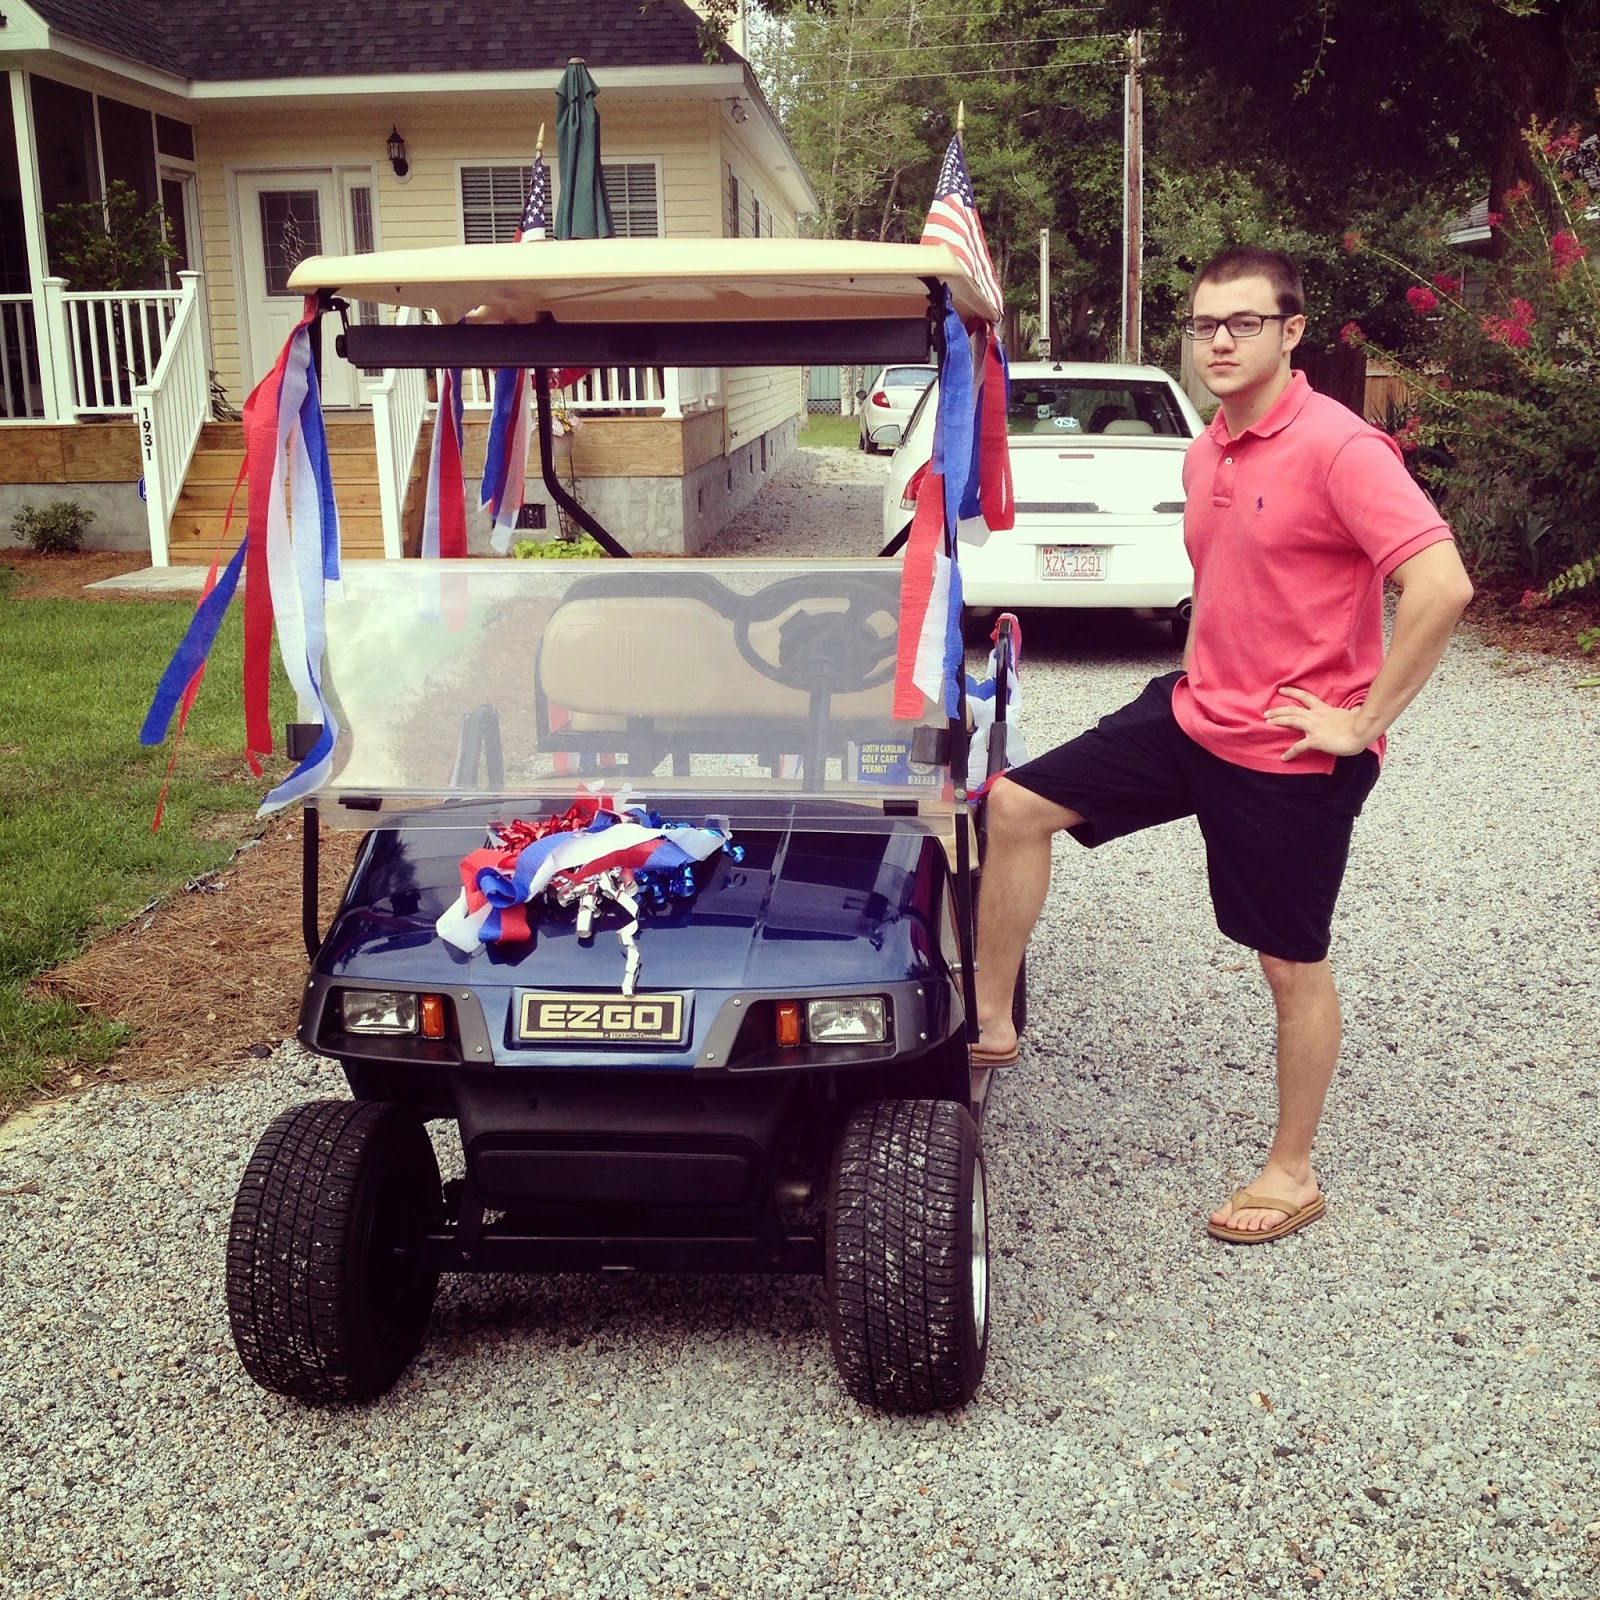 4th of July, golf cart, independence day